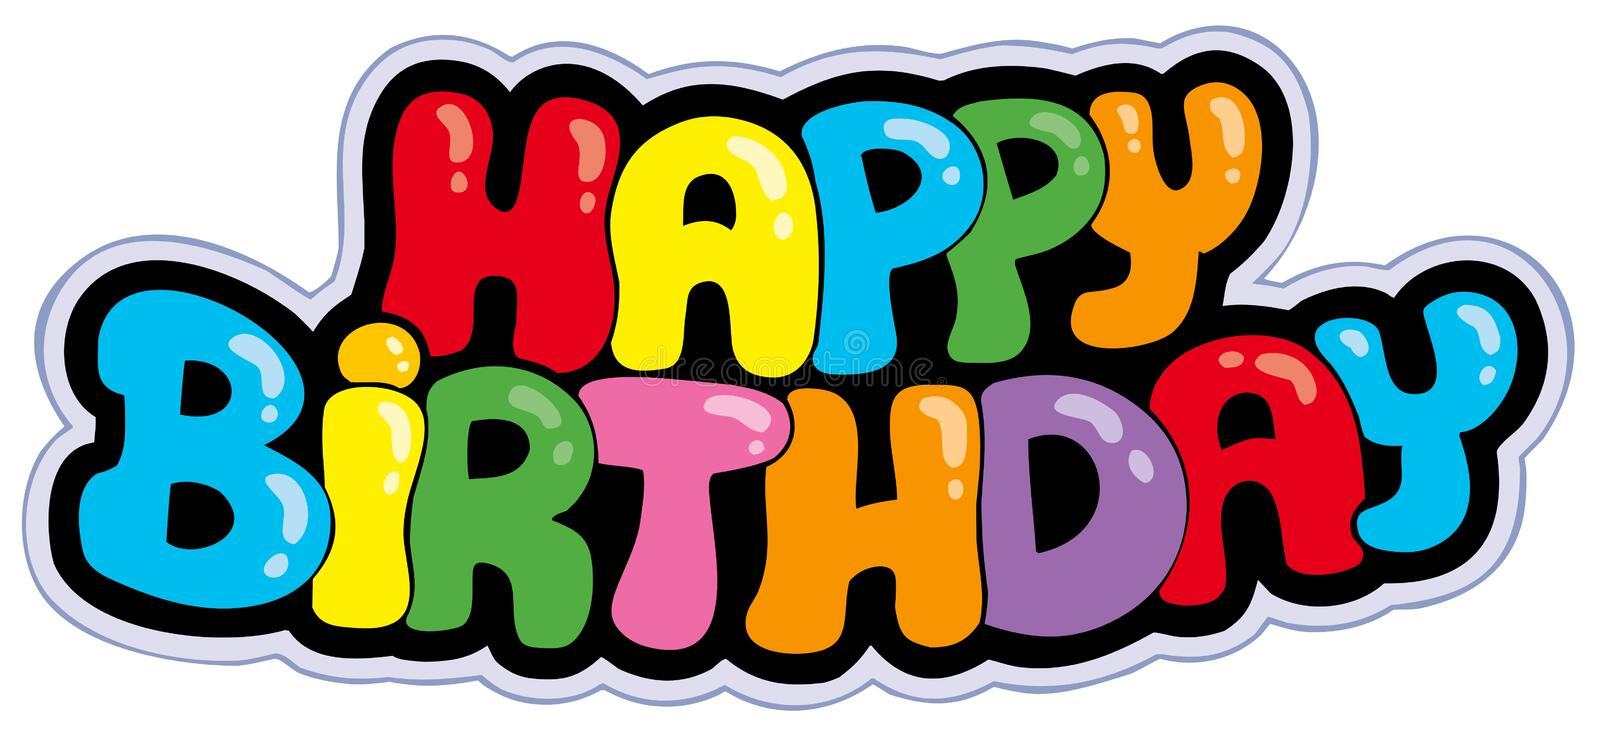 Happy Birthday Cartoon Sign Stock Vector Illustration Of Abstract Colorful 16032289